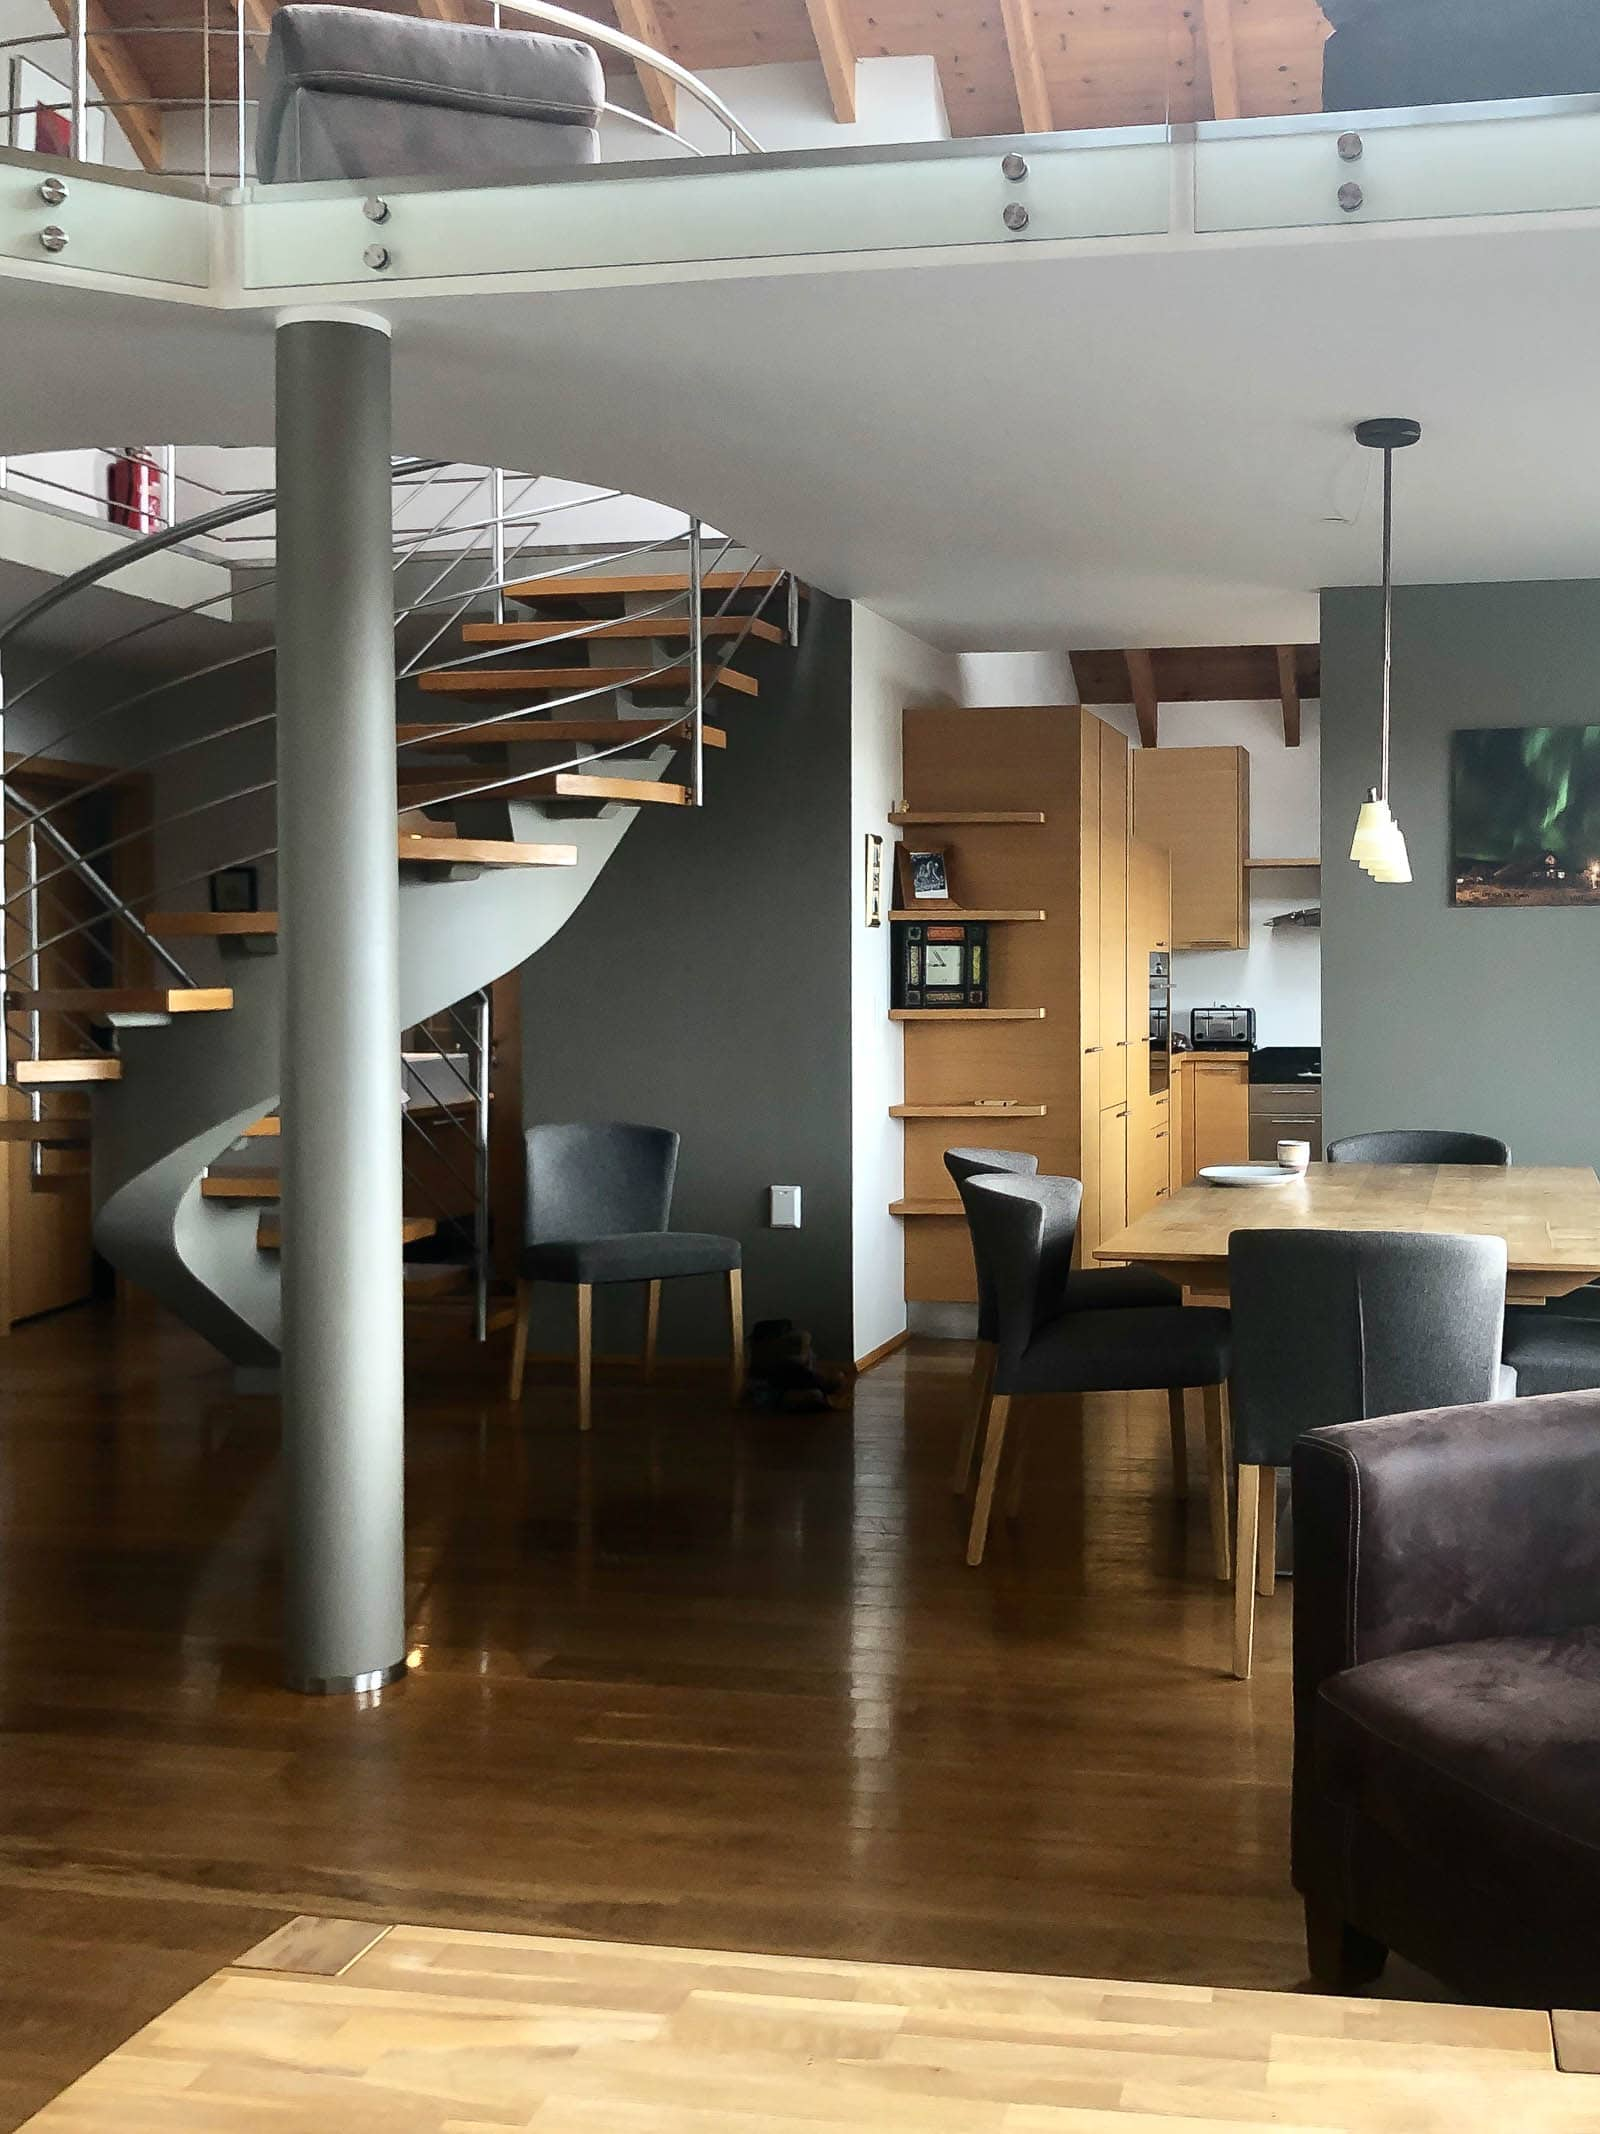 Airbnb in Selfoss Iceland